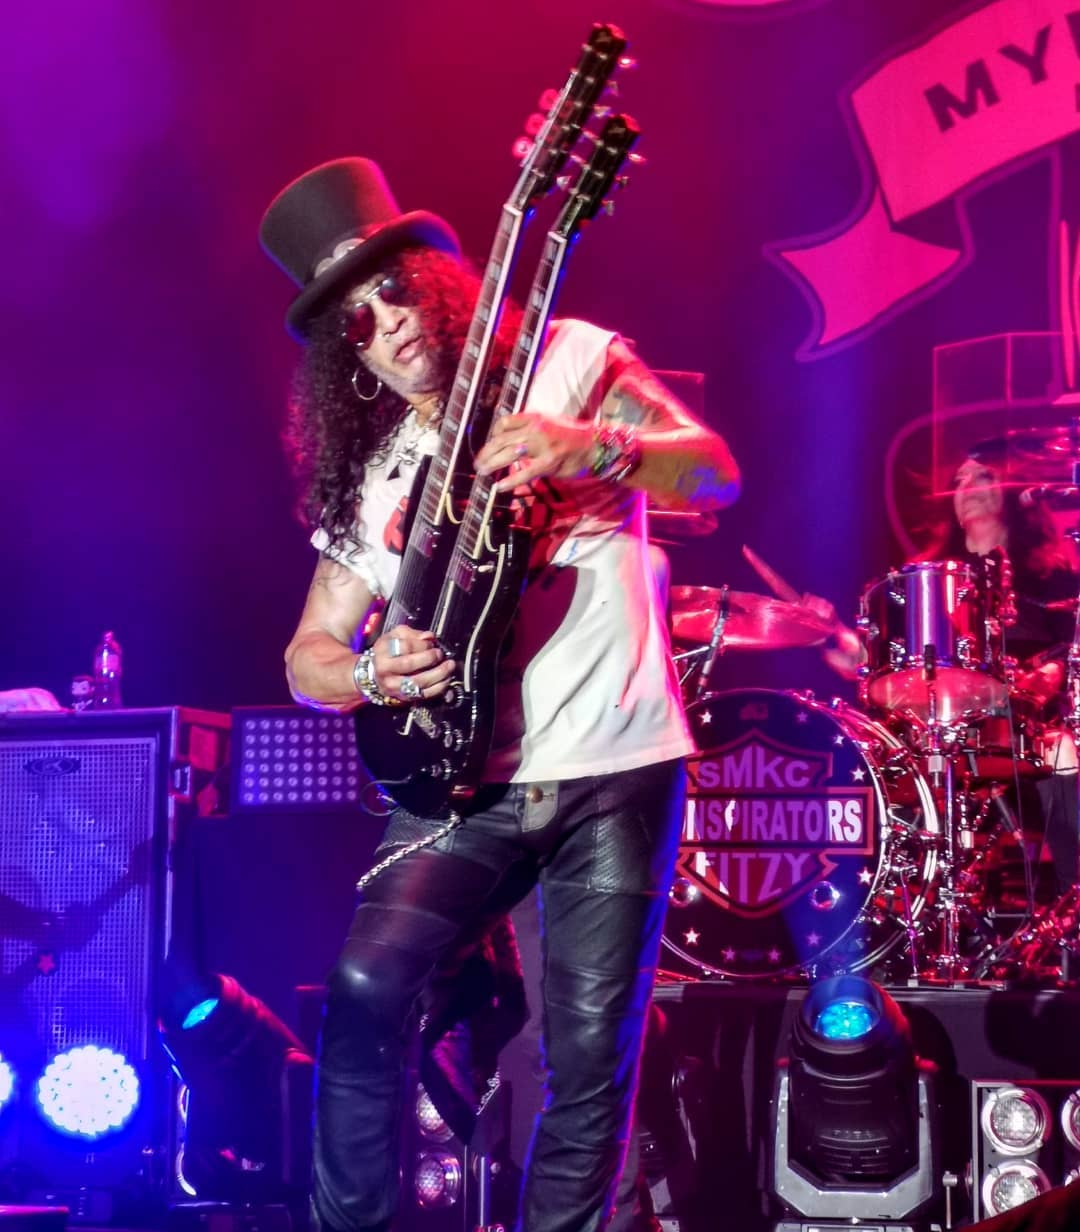 Slash france nouvelle zeland tauranga 2019 smkc living the dream myles kennedy conspirators the one you love is gone